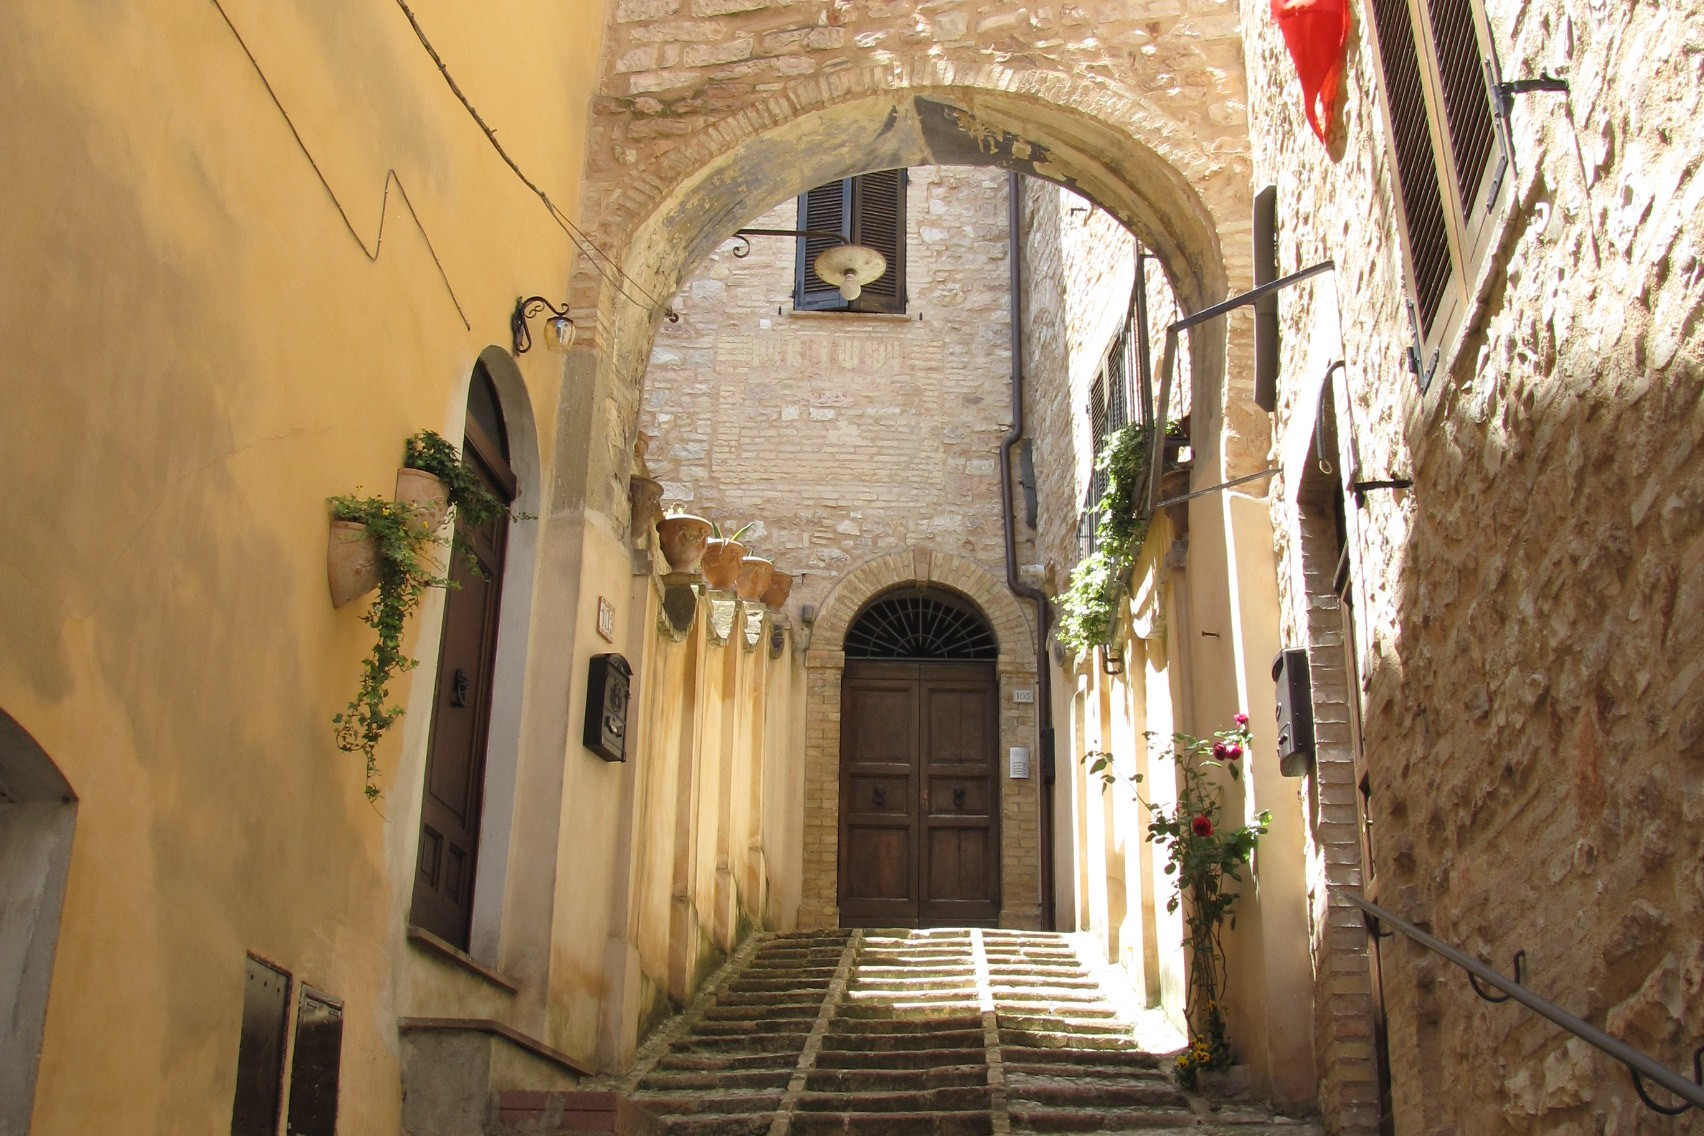 Le Infiorate di Spello